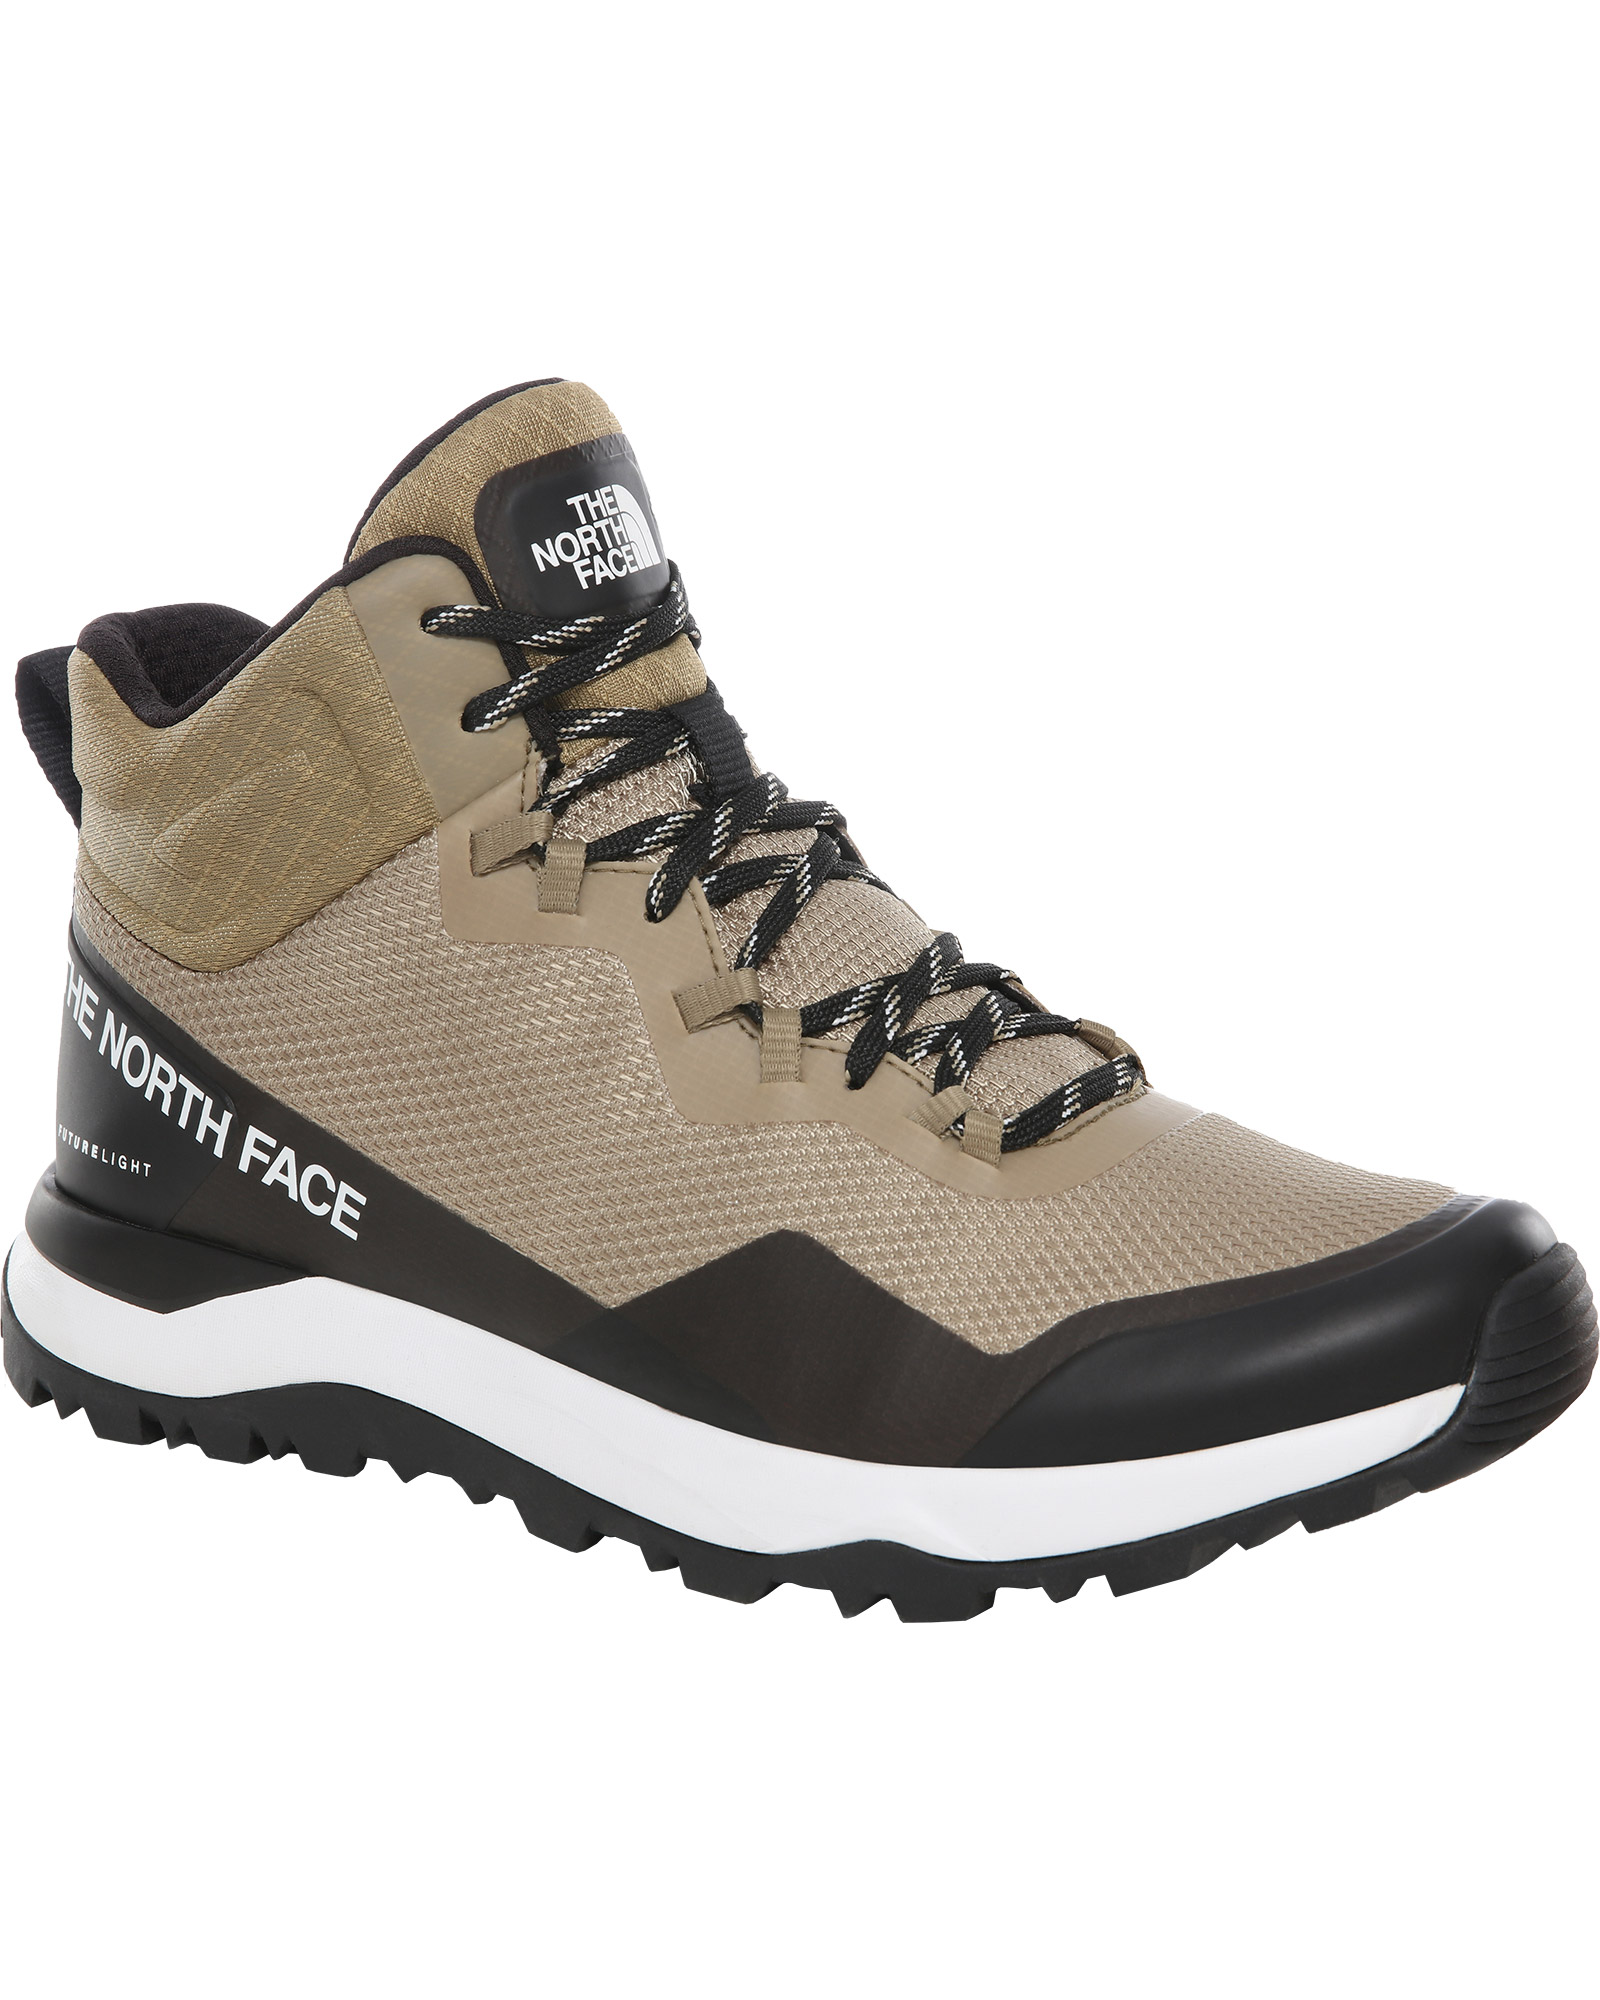 The North Face Men's Activist Mid FUTURELIGHT Walking Boots Kelp Tan/TNF Black 0